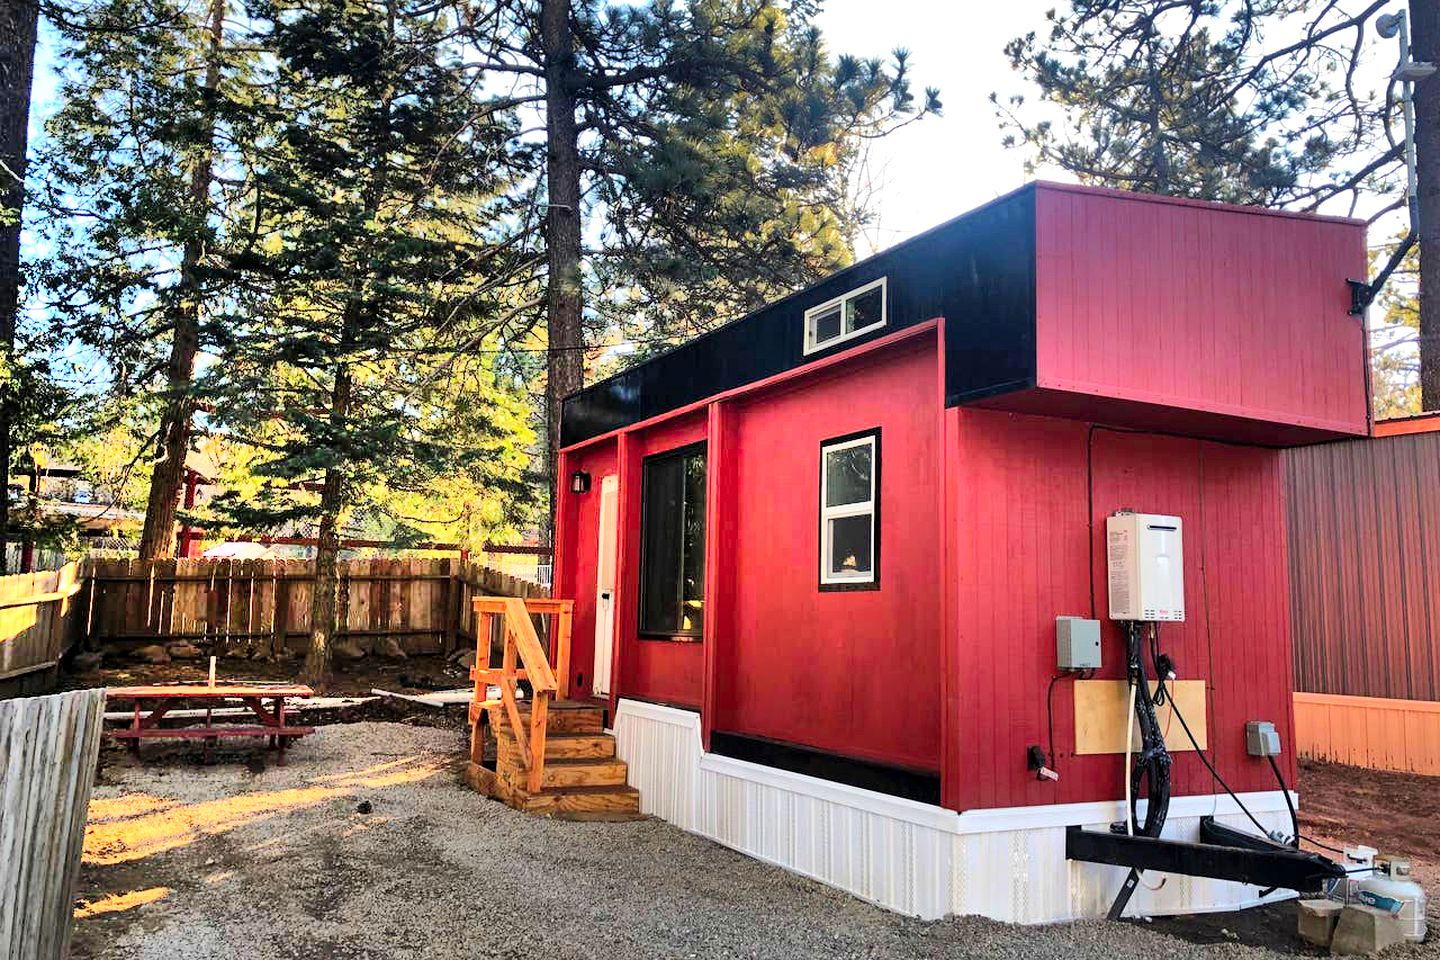 This modern Mt Laguna tiny house is perfect for romantic weekend getaways near San Diego